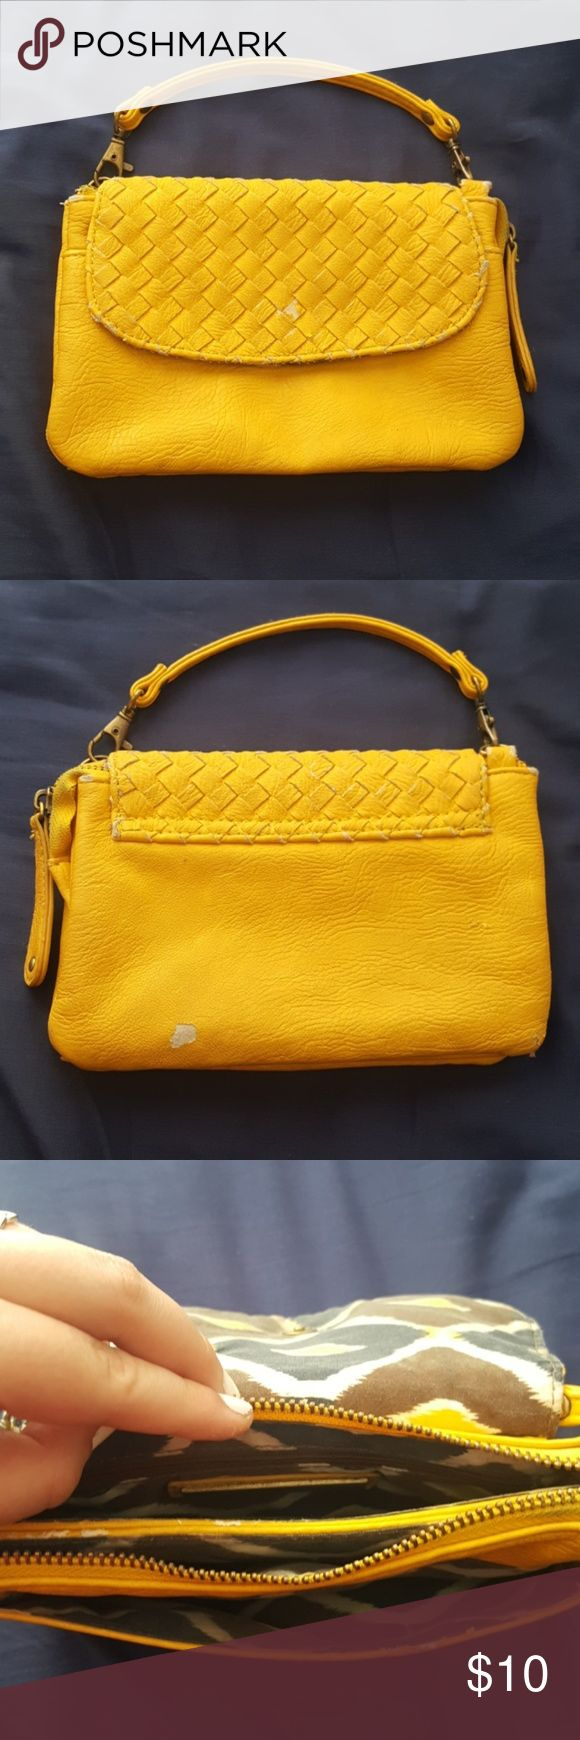 Yellow purse Can also be a clutch Has some small rips here and there Francesca's Collections Bags